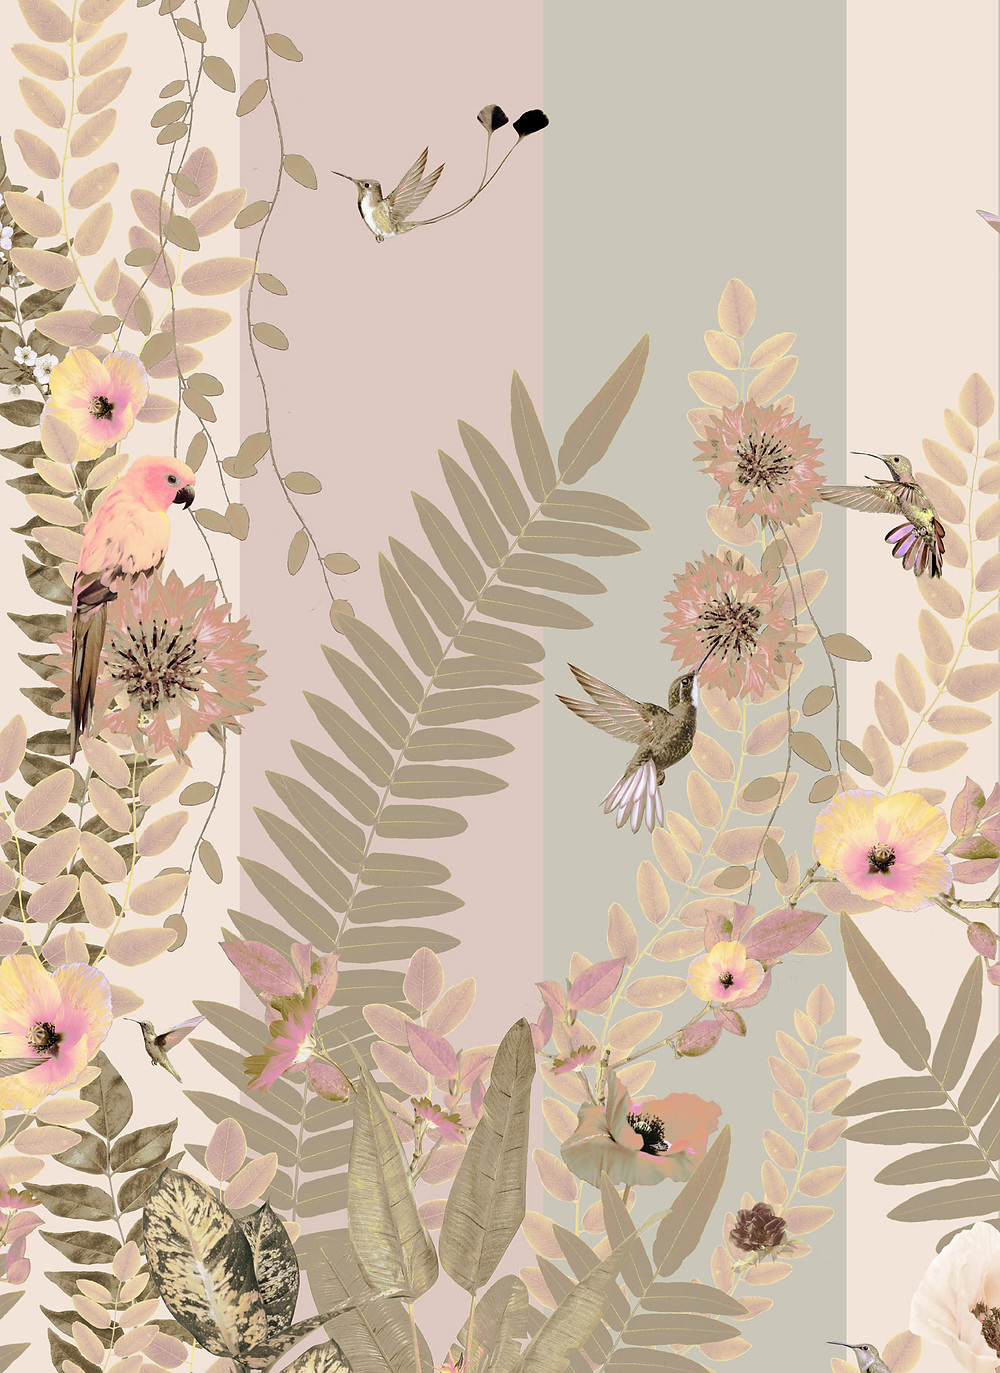 Tropical Wallpaper with parrots by Good & Craft, Good and Craft